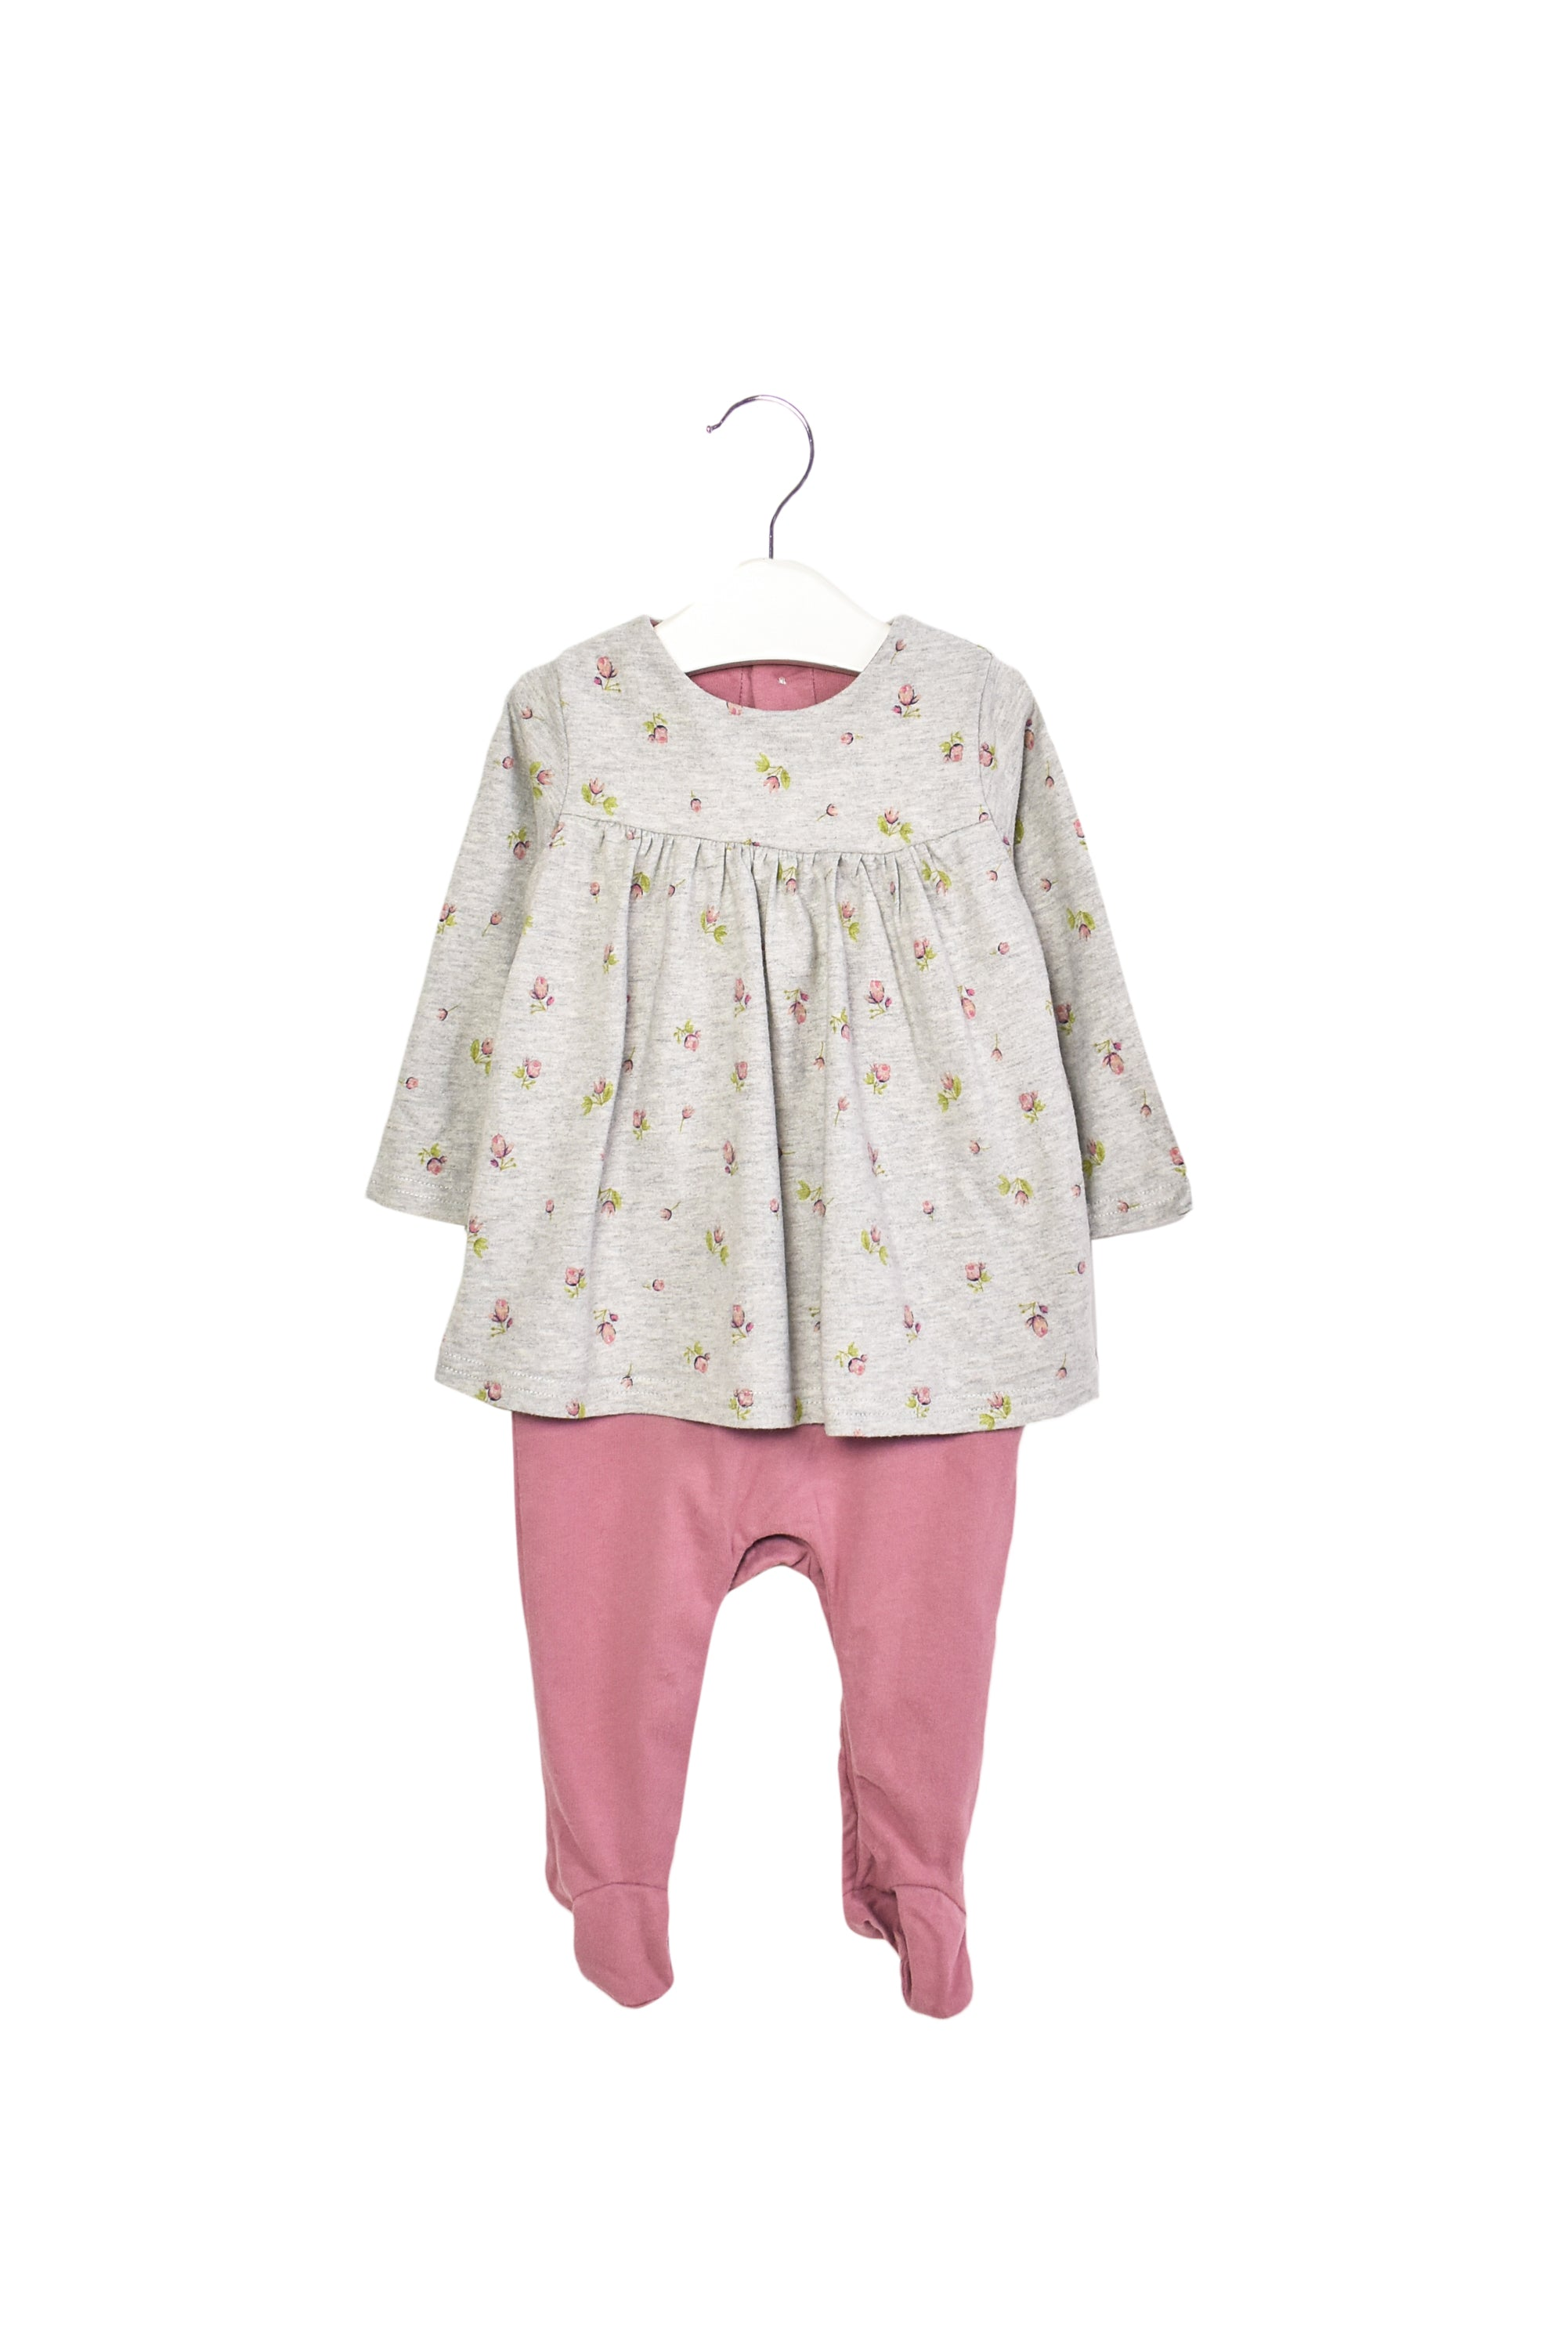 10013791 Mamas & Papas Baby ~ Jumpsuit 6-9M at Retykle